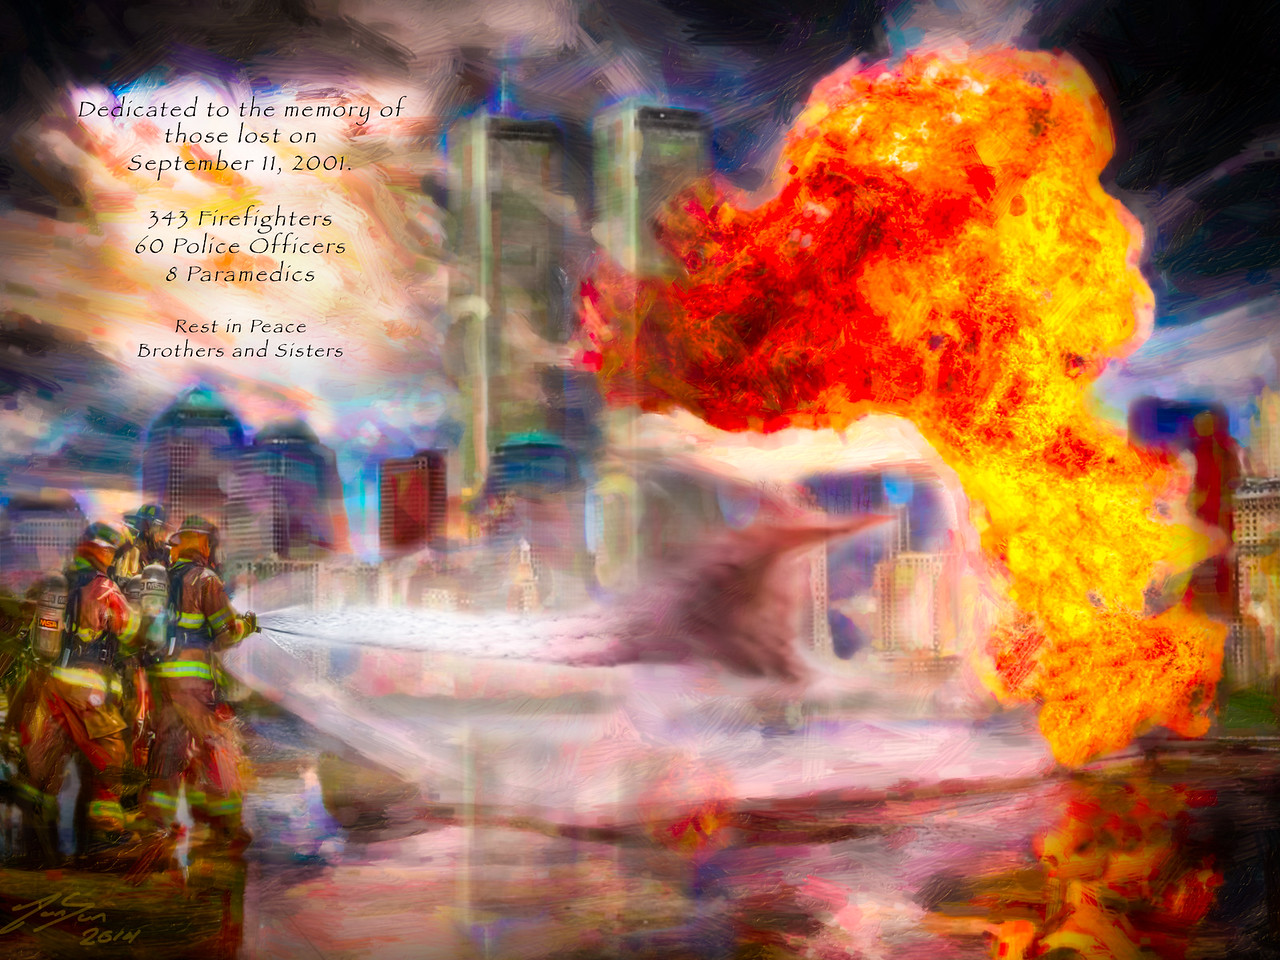 This piece is dedicated to the memory of all those lost on September 11, 2001.